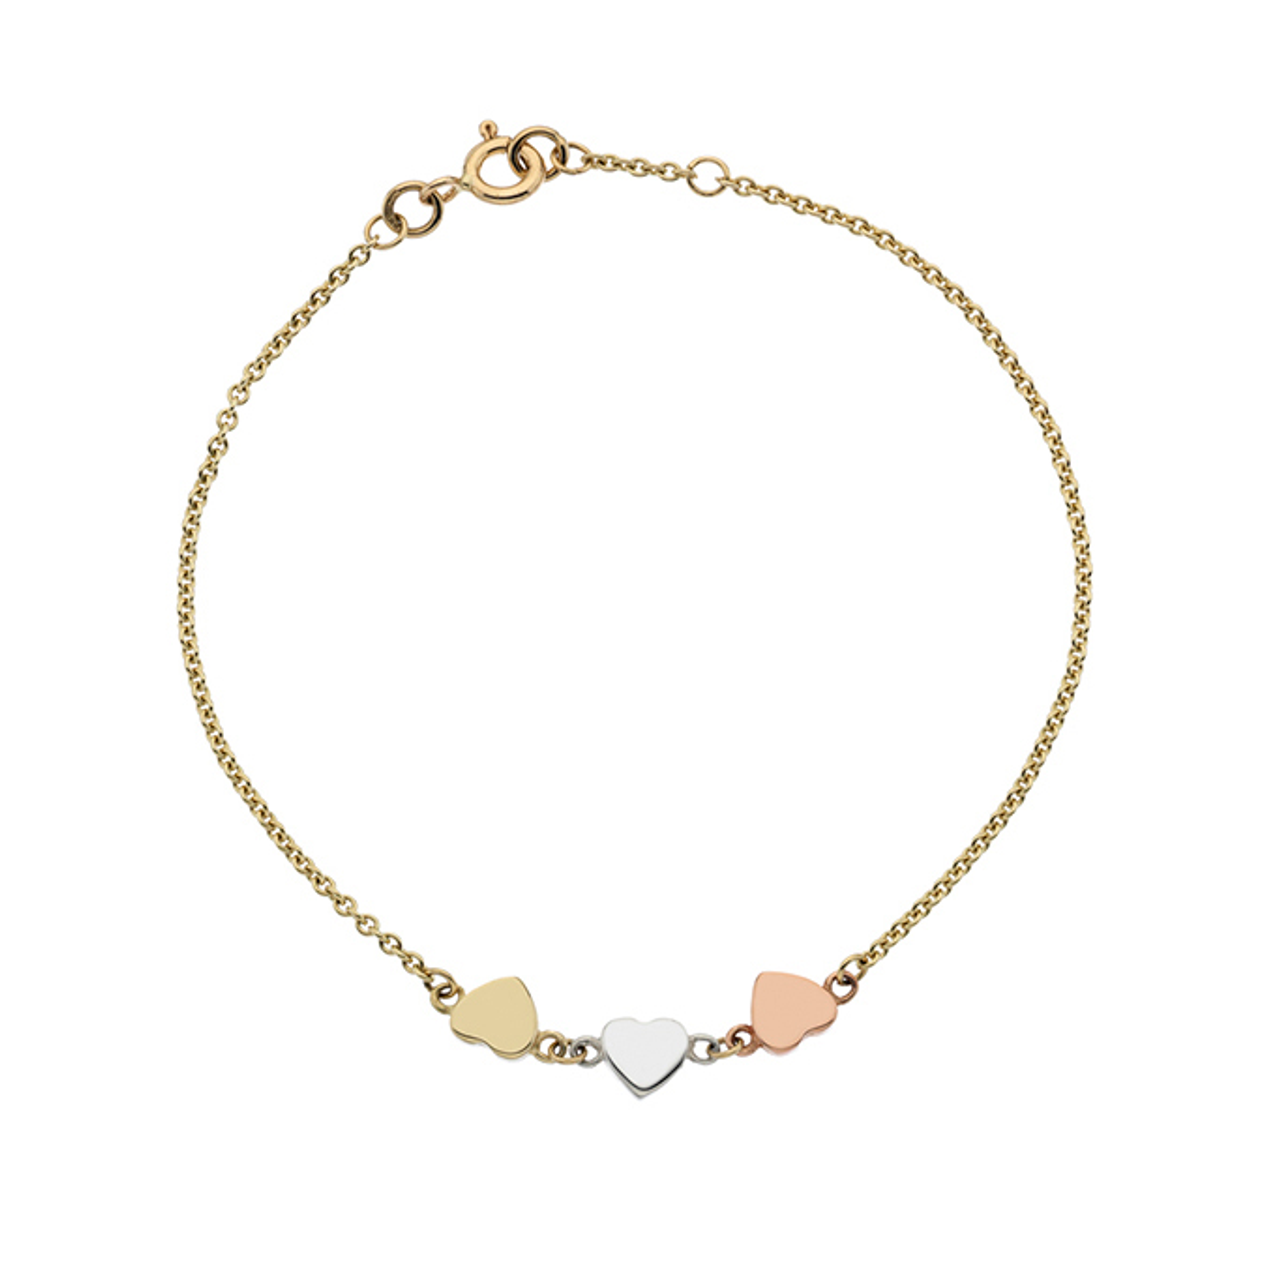 9ct Yellow, White & Rose Gold Heart Bracelet.